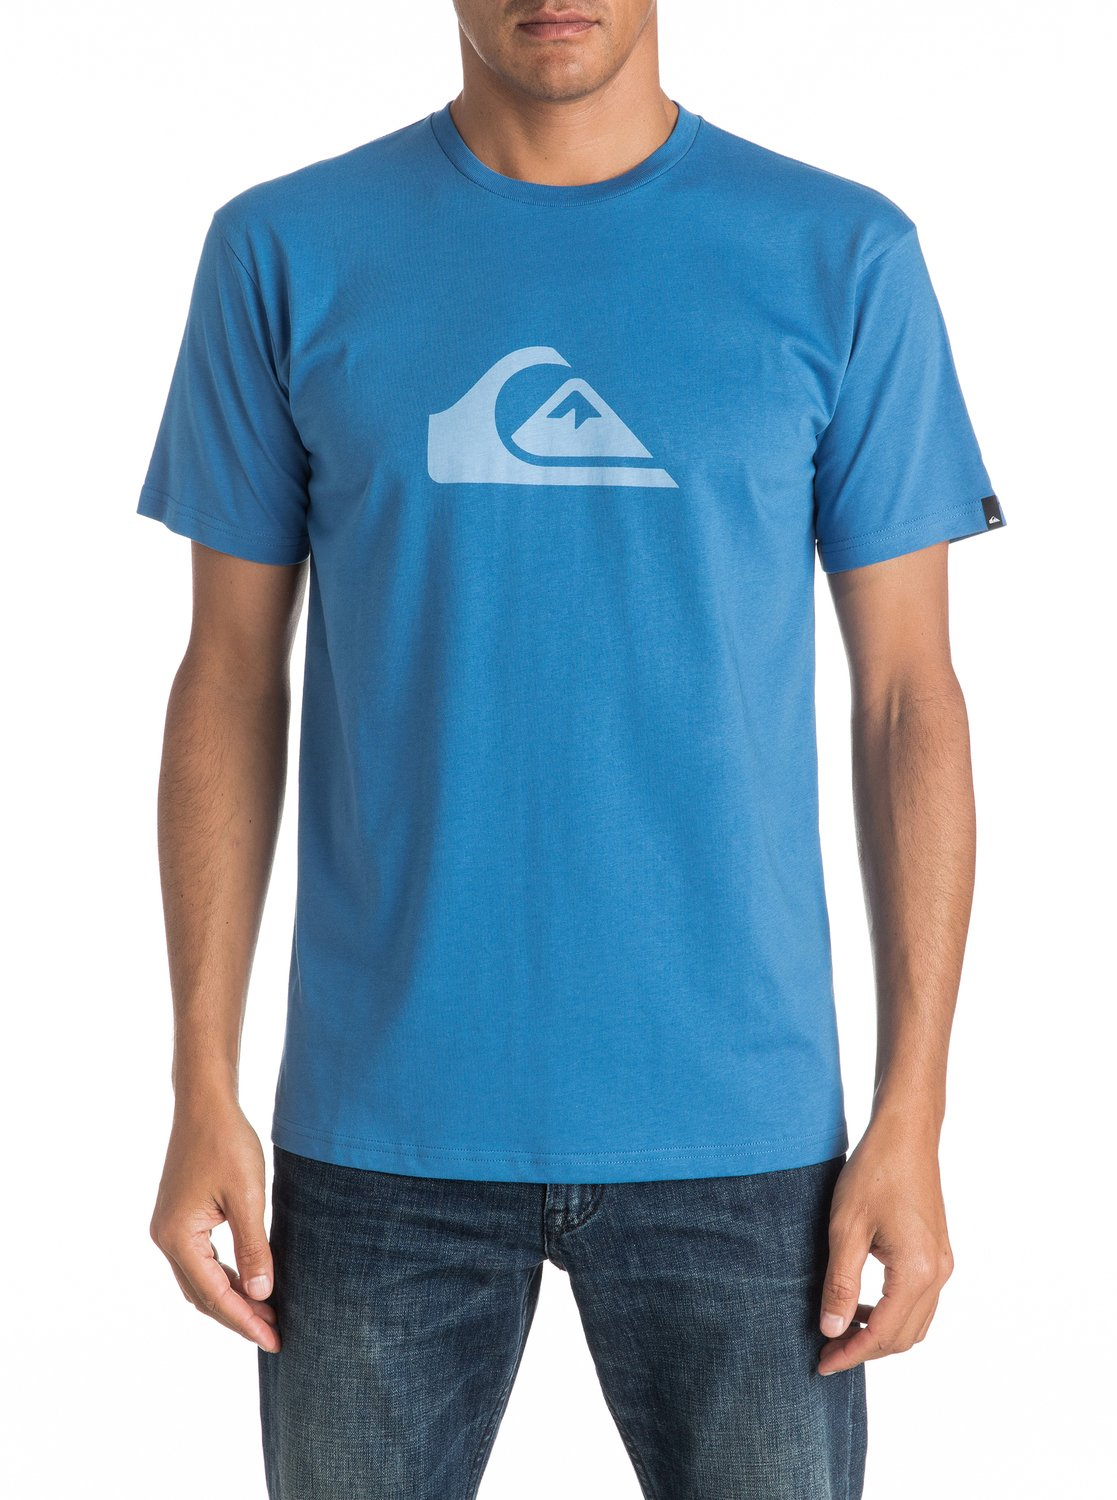 Classic Everyday - Tee-Shirt pour Homme - Quiksilver